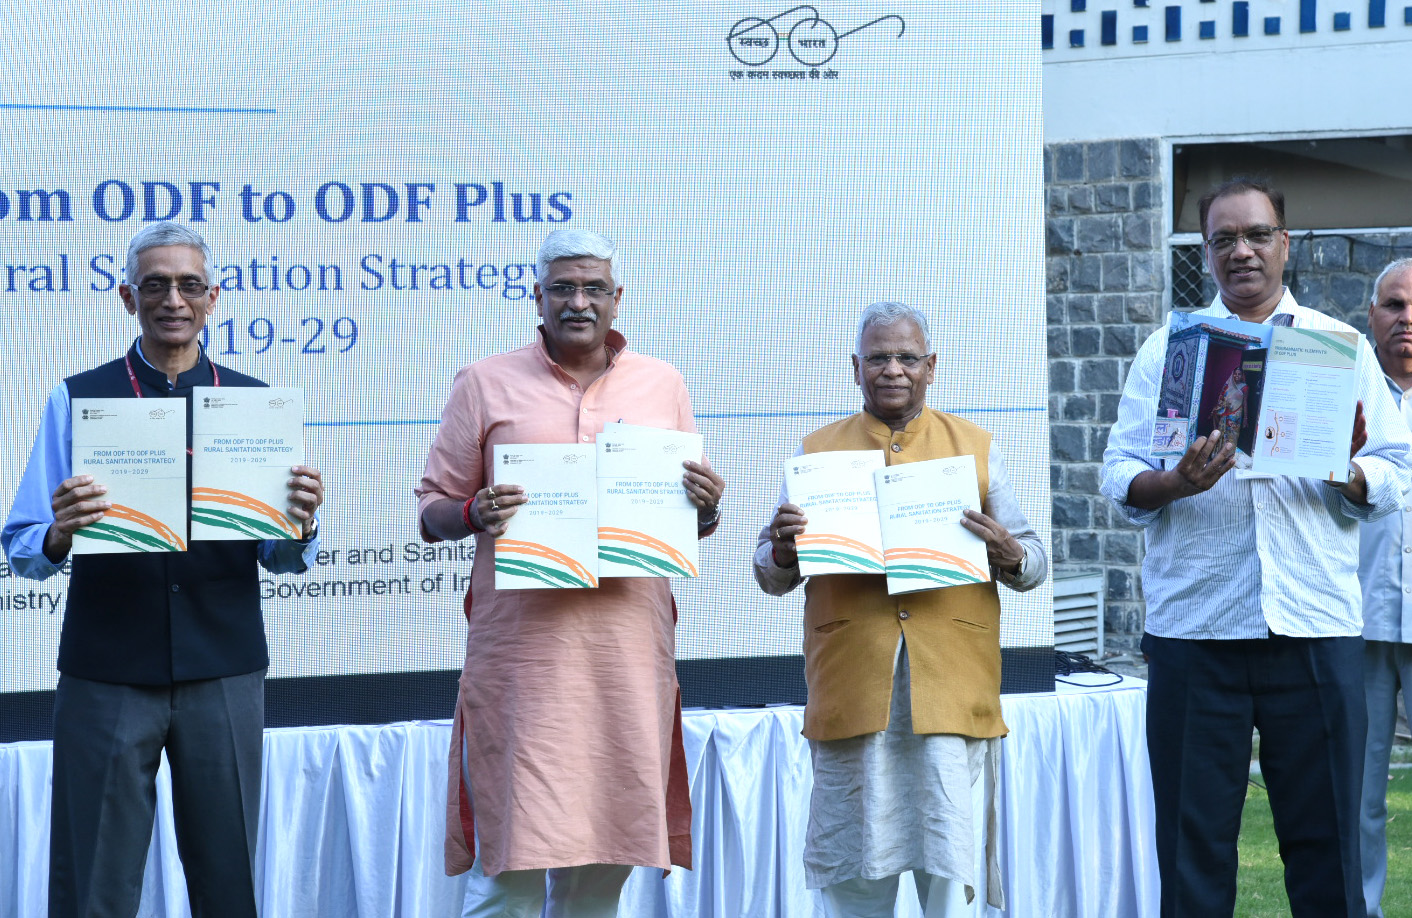 National Launch of 10 Year Rural Sanitation Strategy